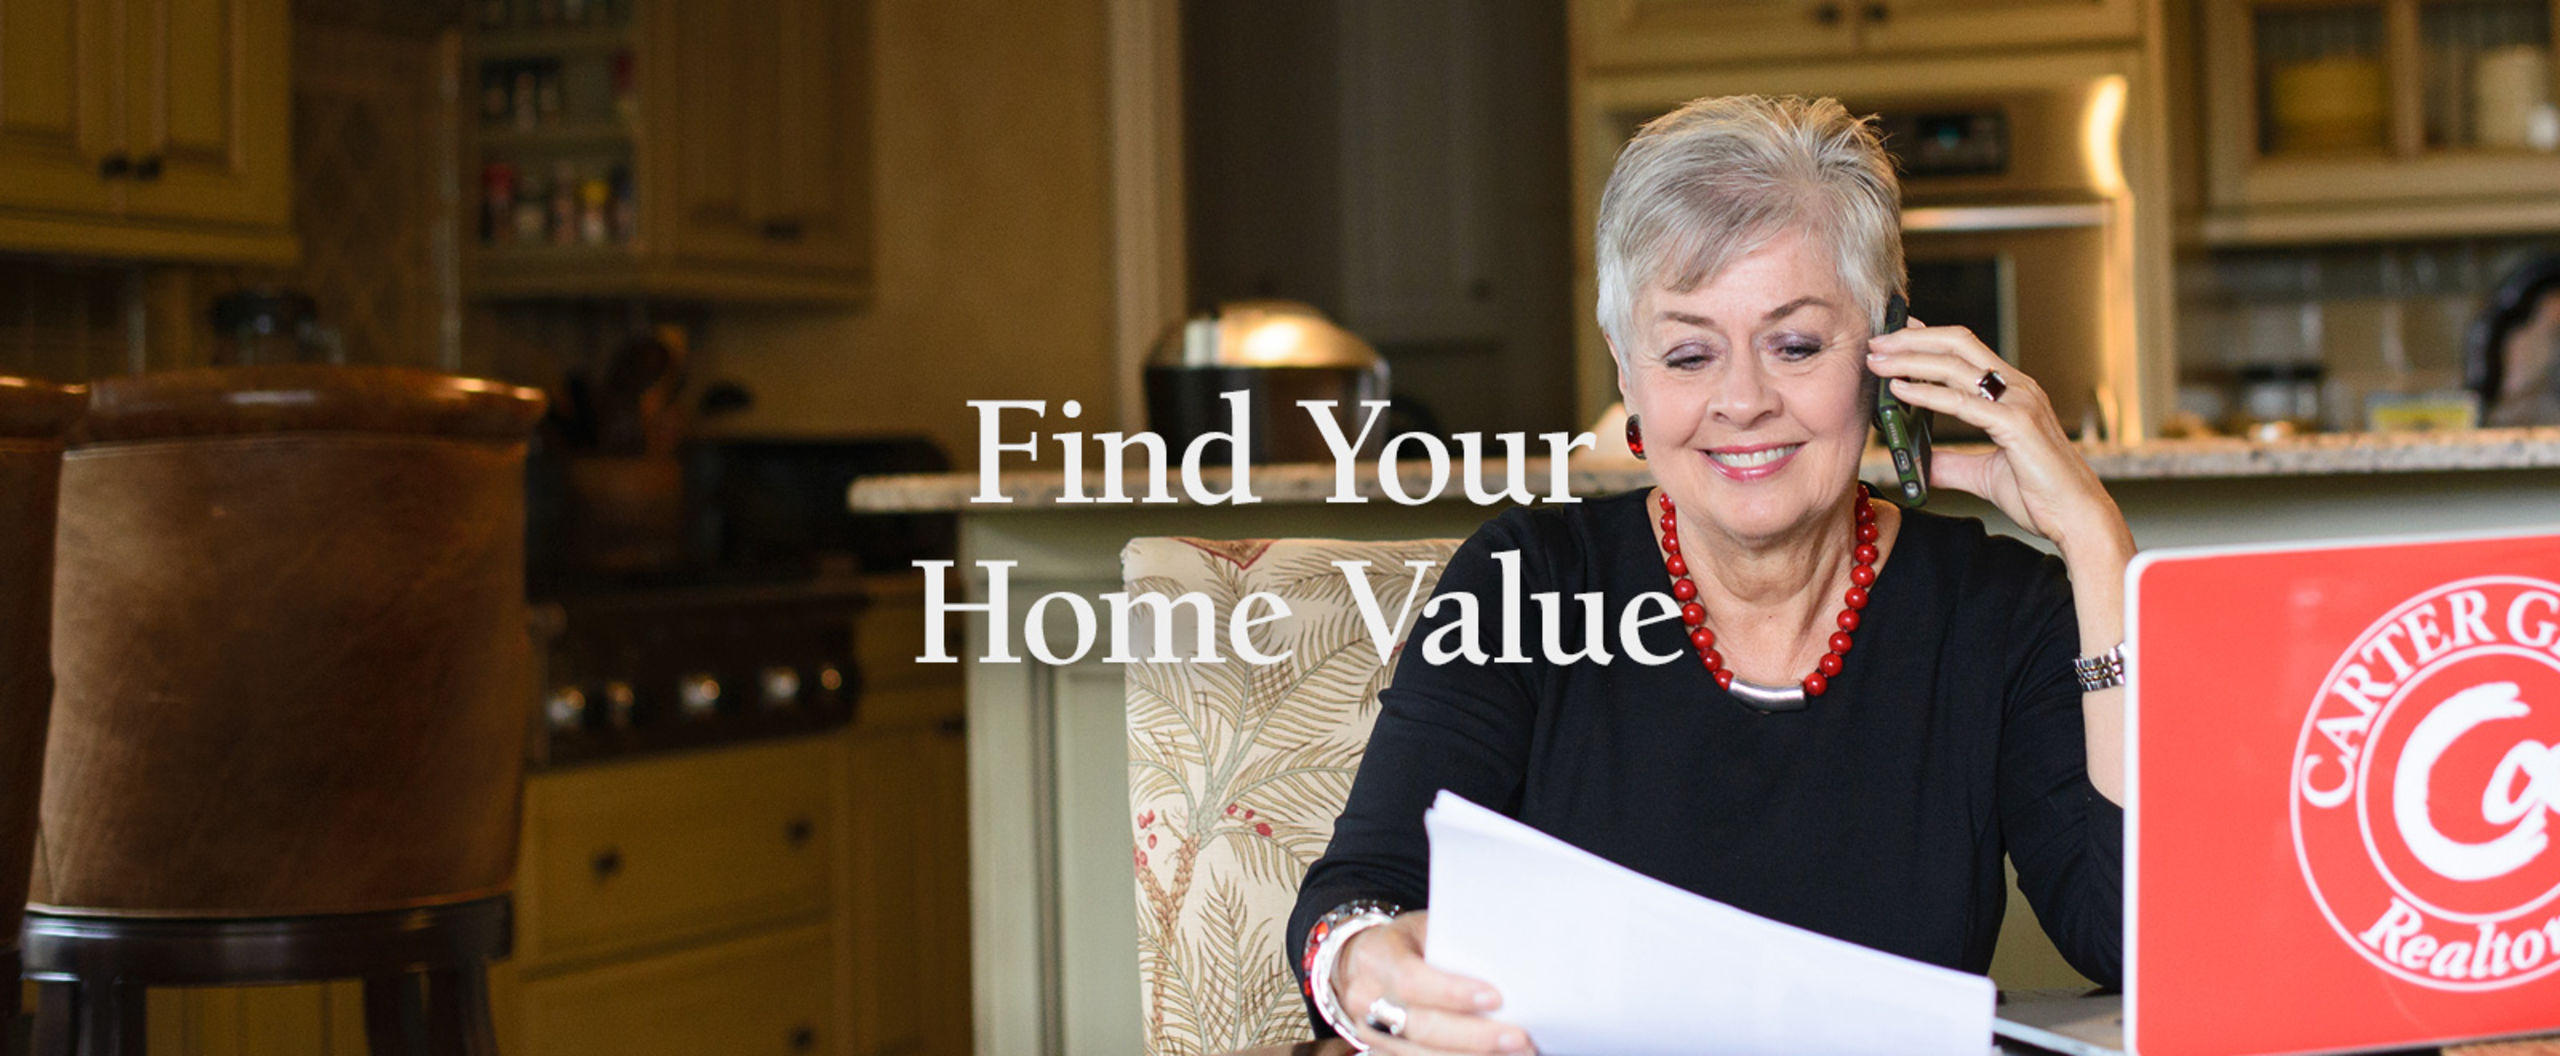 Trust us to give you a personalized Value Assessment in 24 hrs.